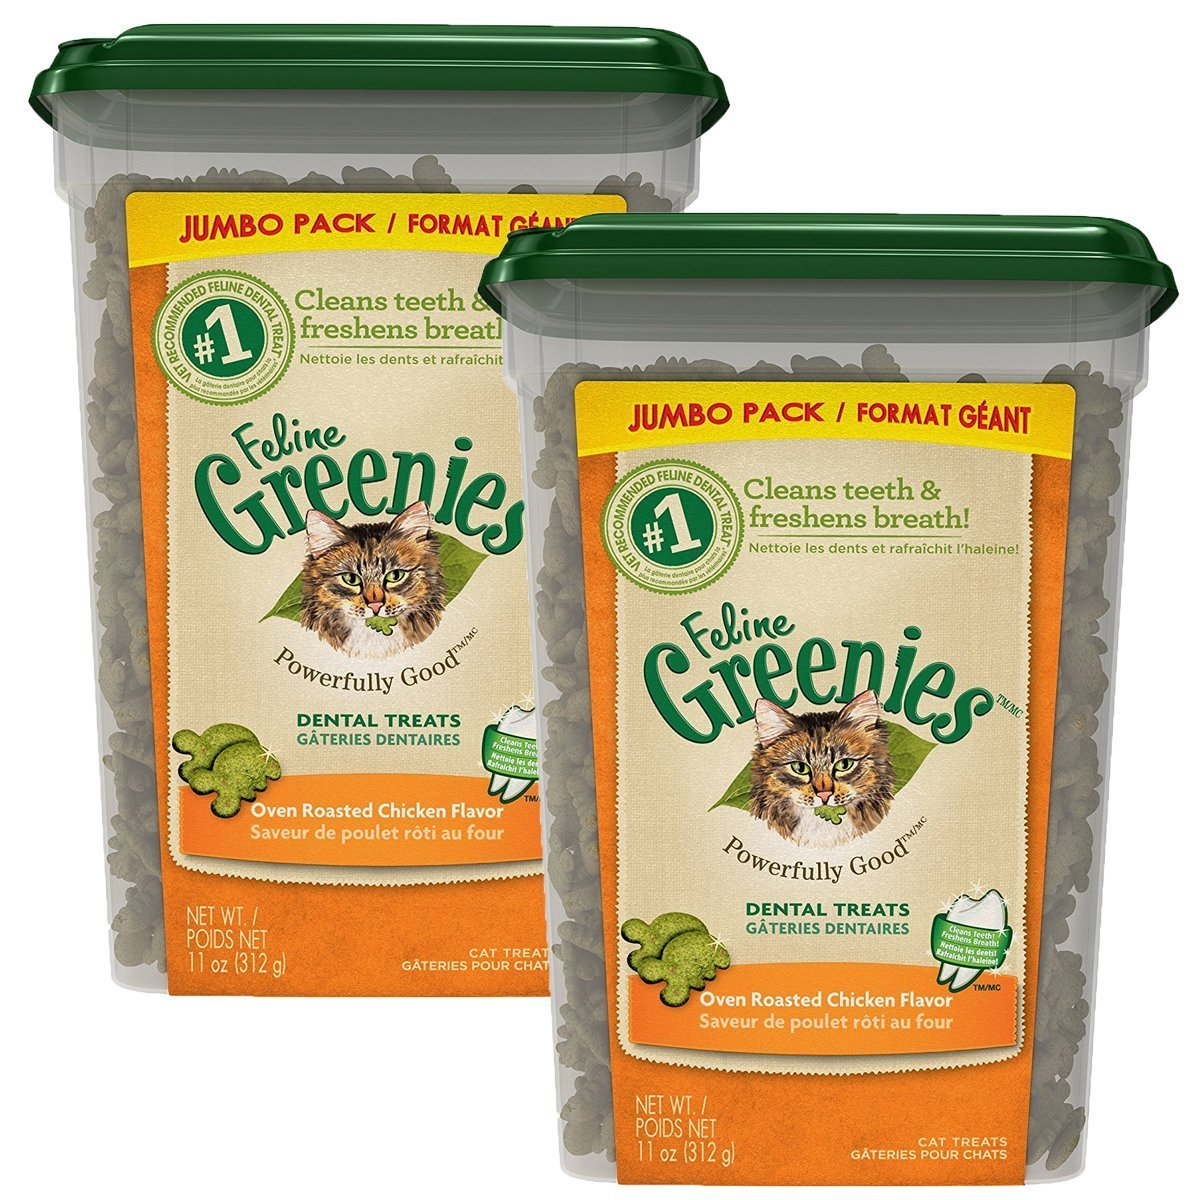 FELINE GREENIES Dental Cat Treats (Chicken, 22 oz.) by Greenies